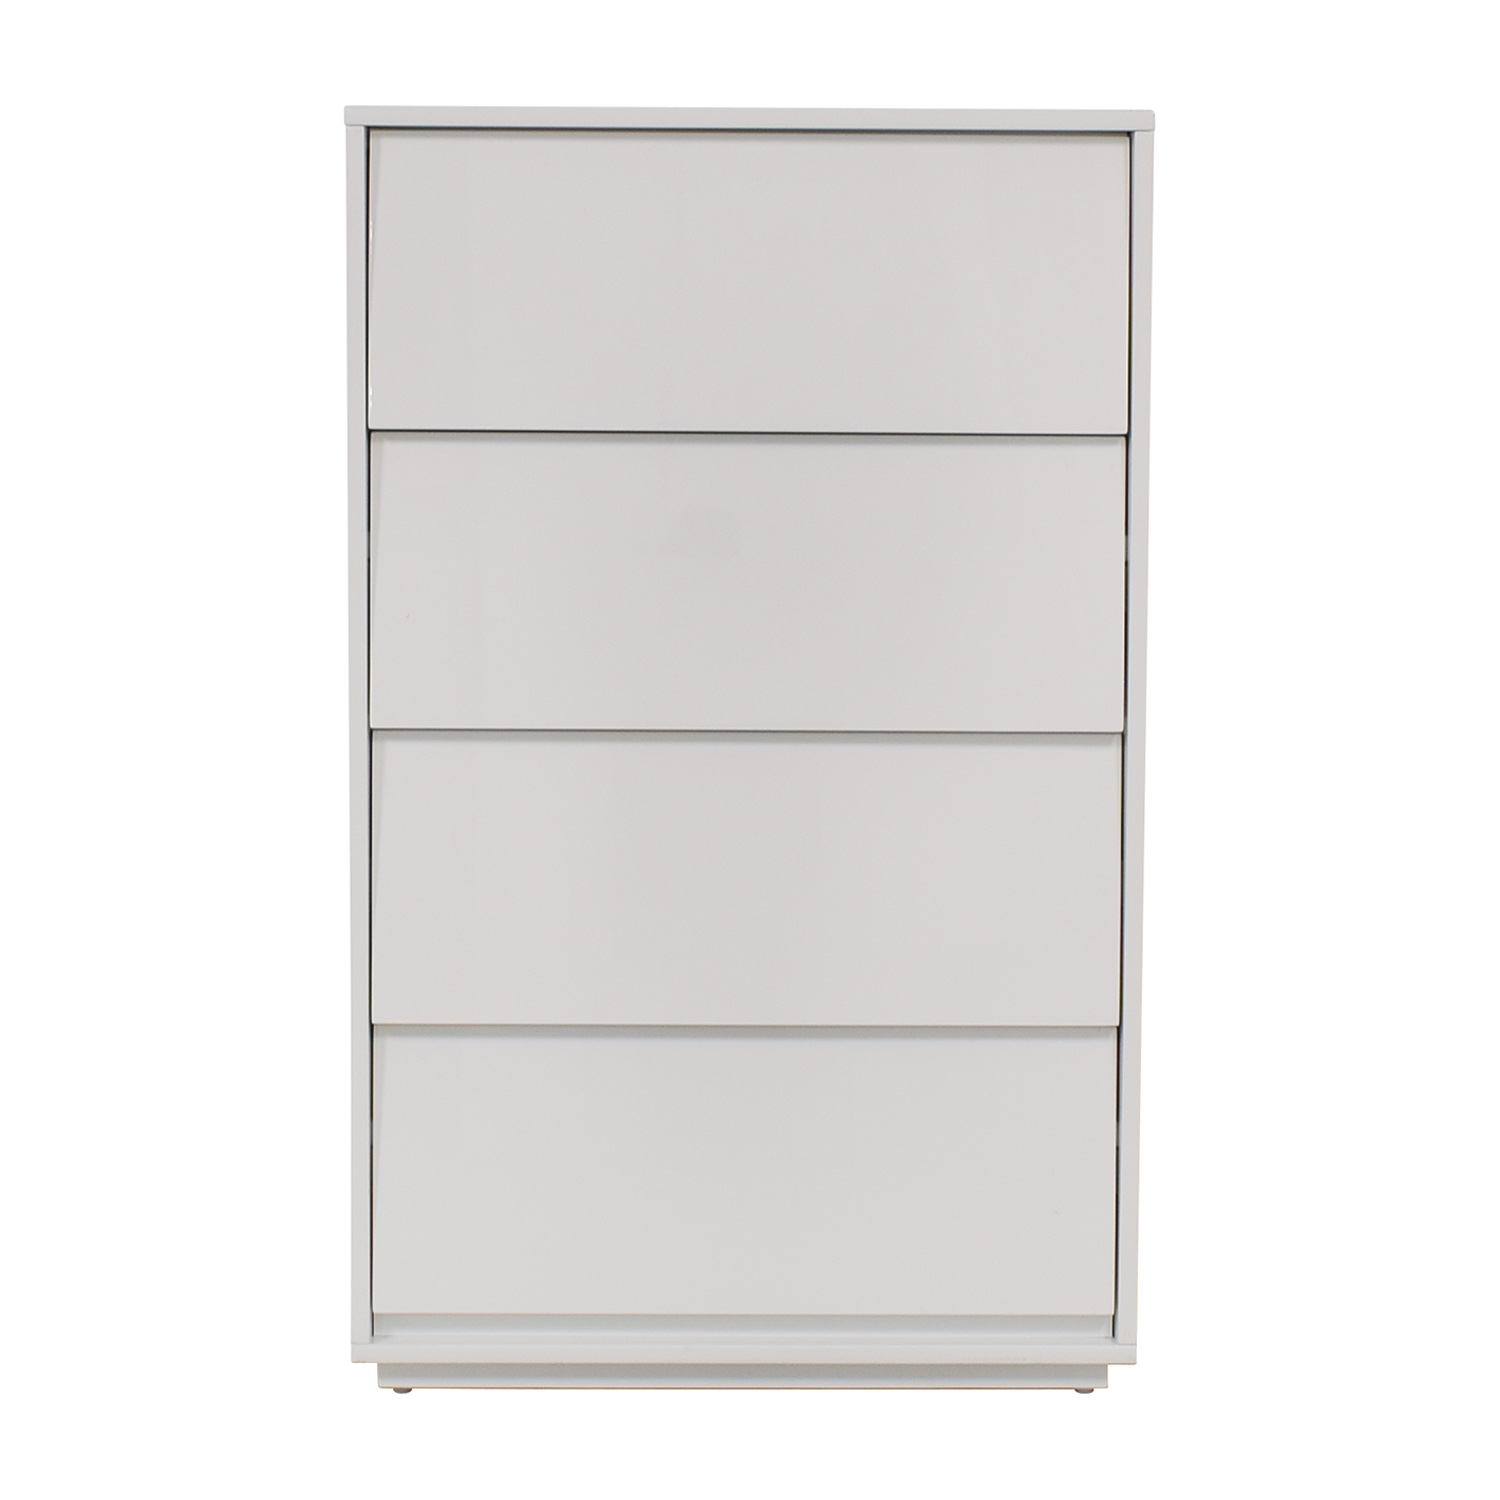 CB2 CB2 Gallery White Four Drawer Tall Chest nyc